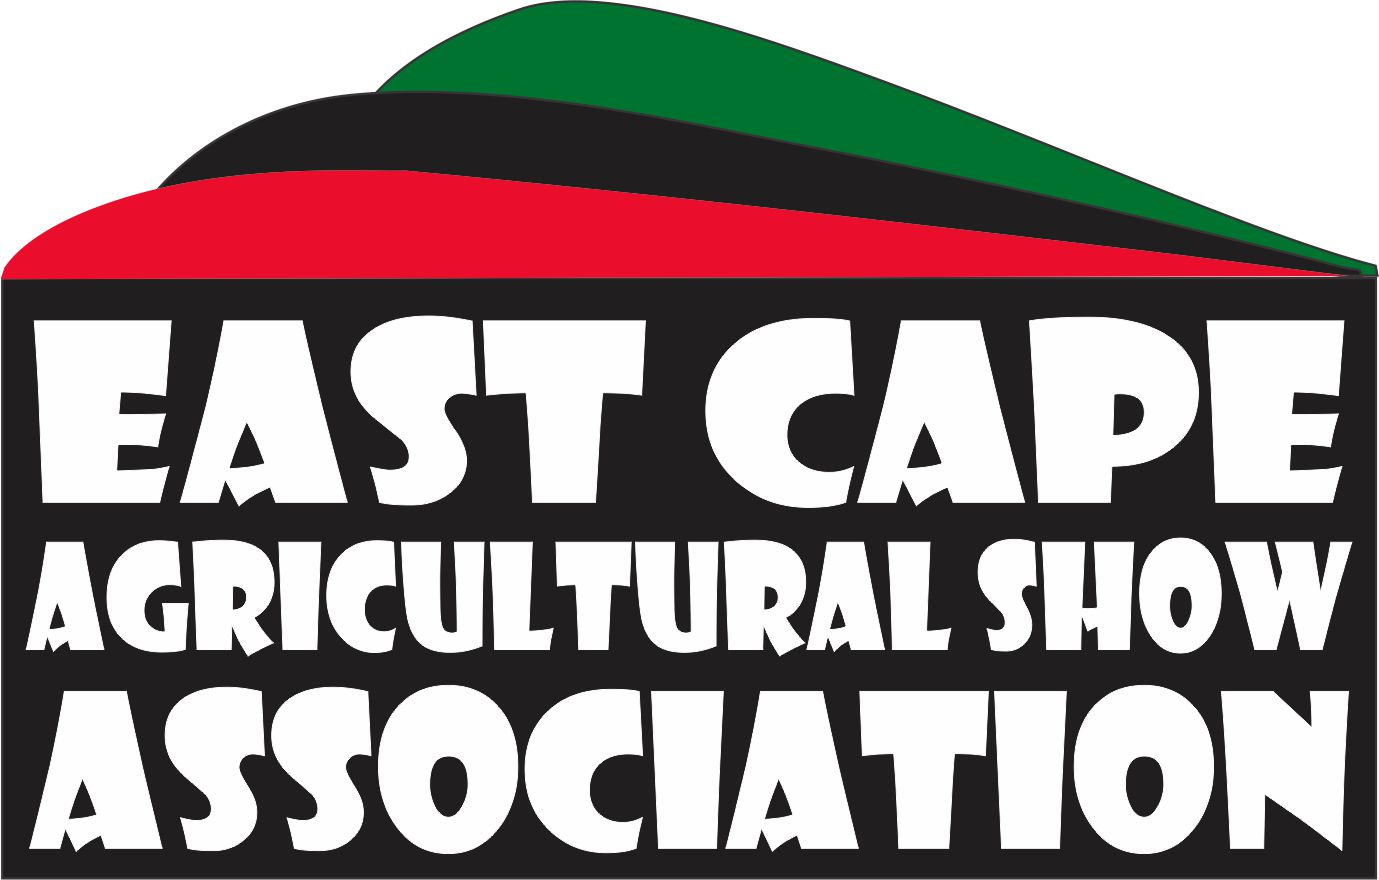 East Cape Agricultural Show Association